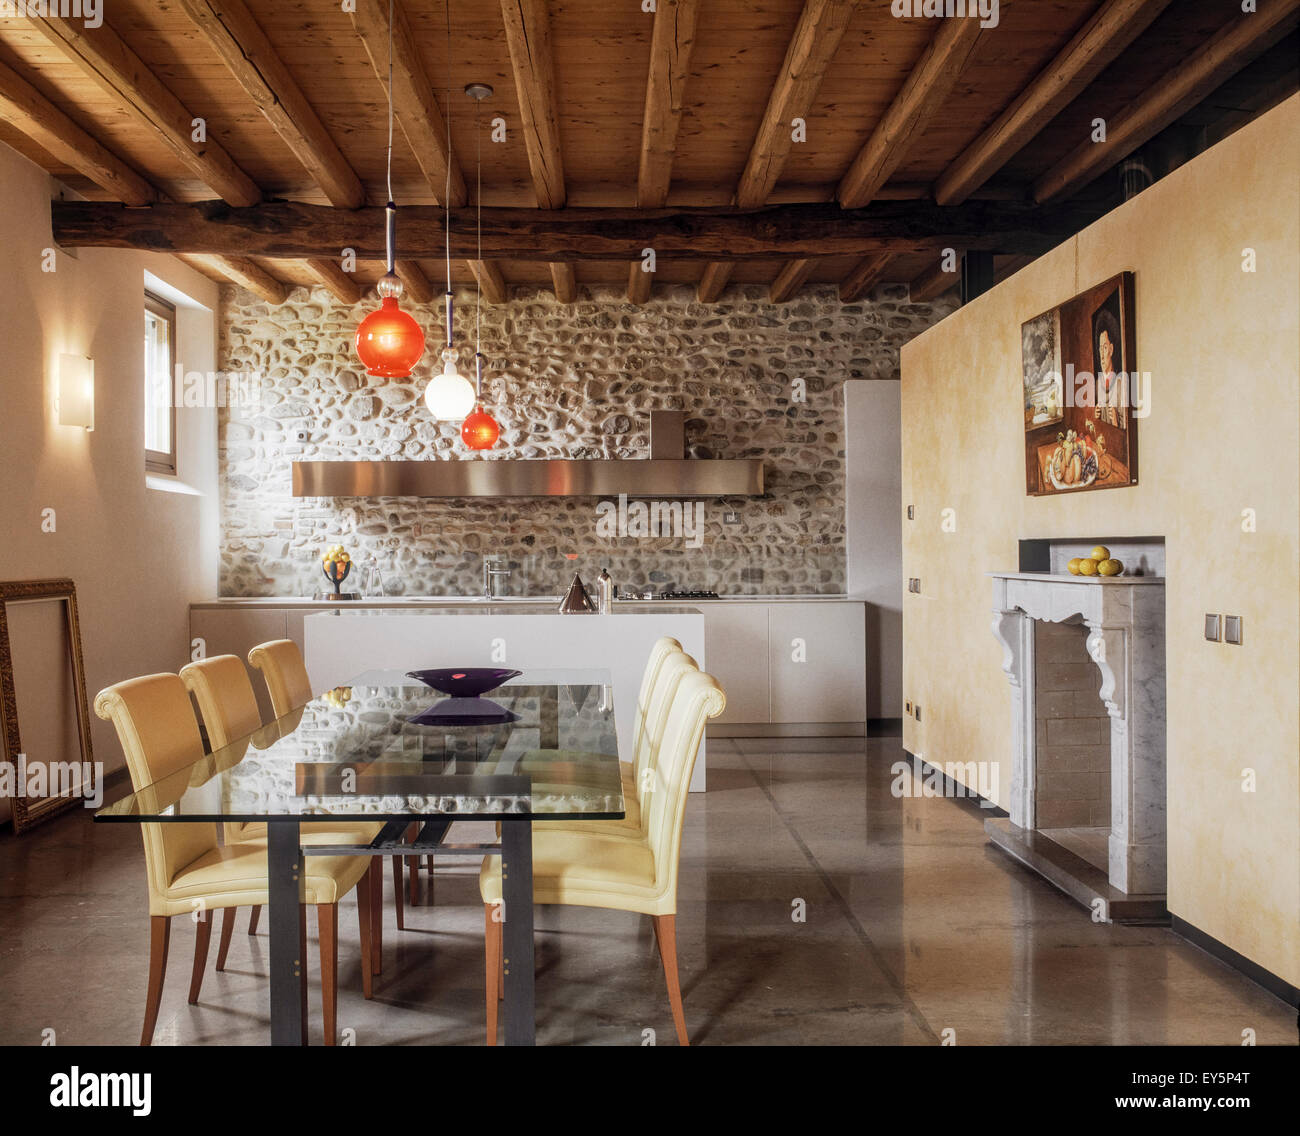 dining table made of glass and chairs neat to fireplace overlooking on the modern kitchen  whose floor is with marble - Stock Image